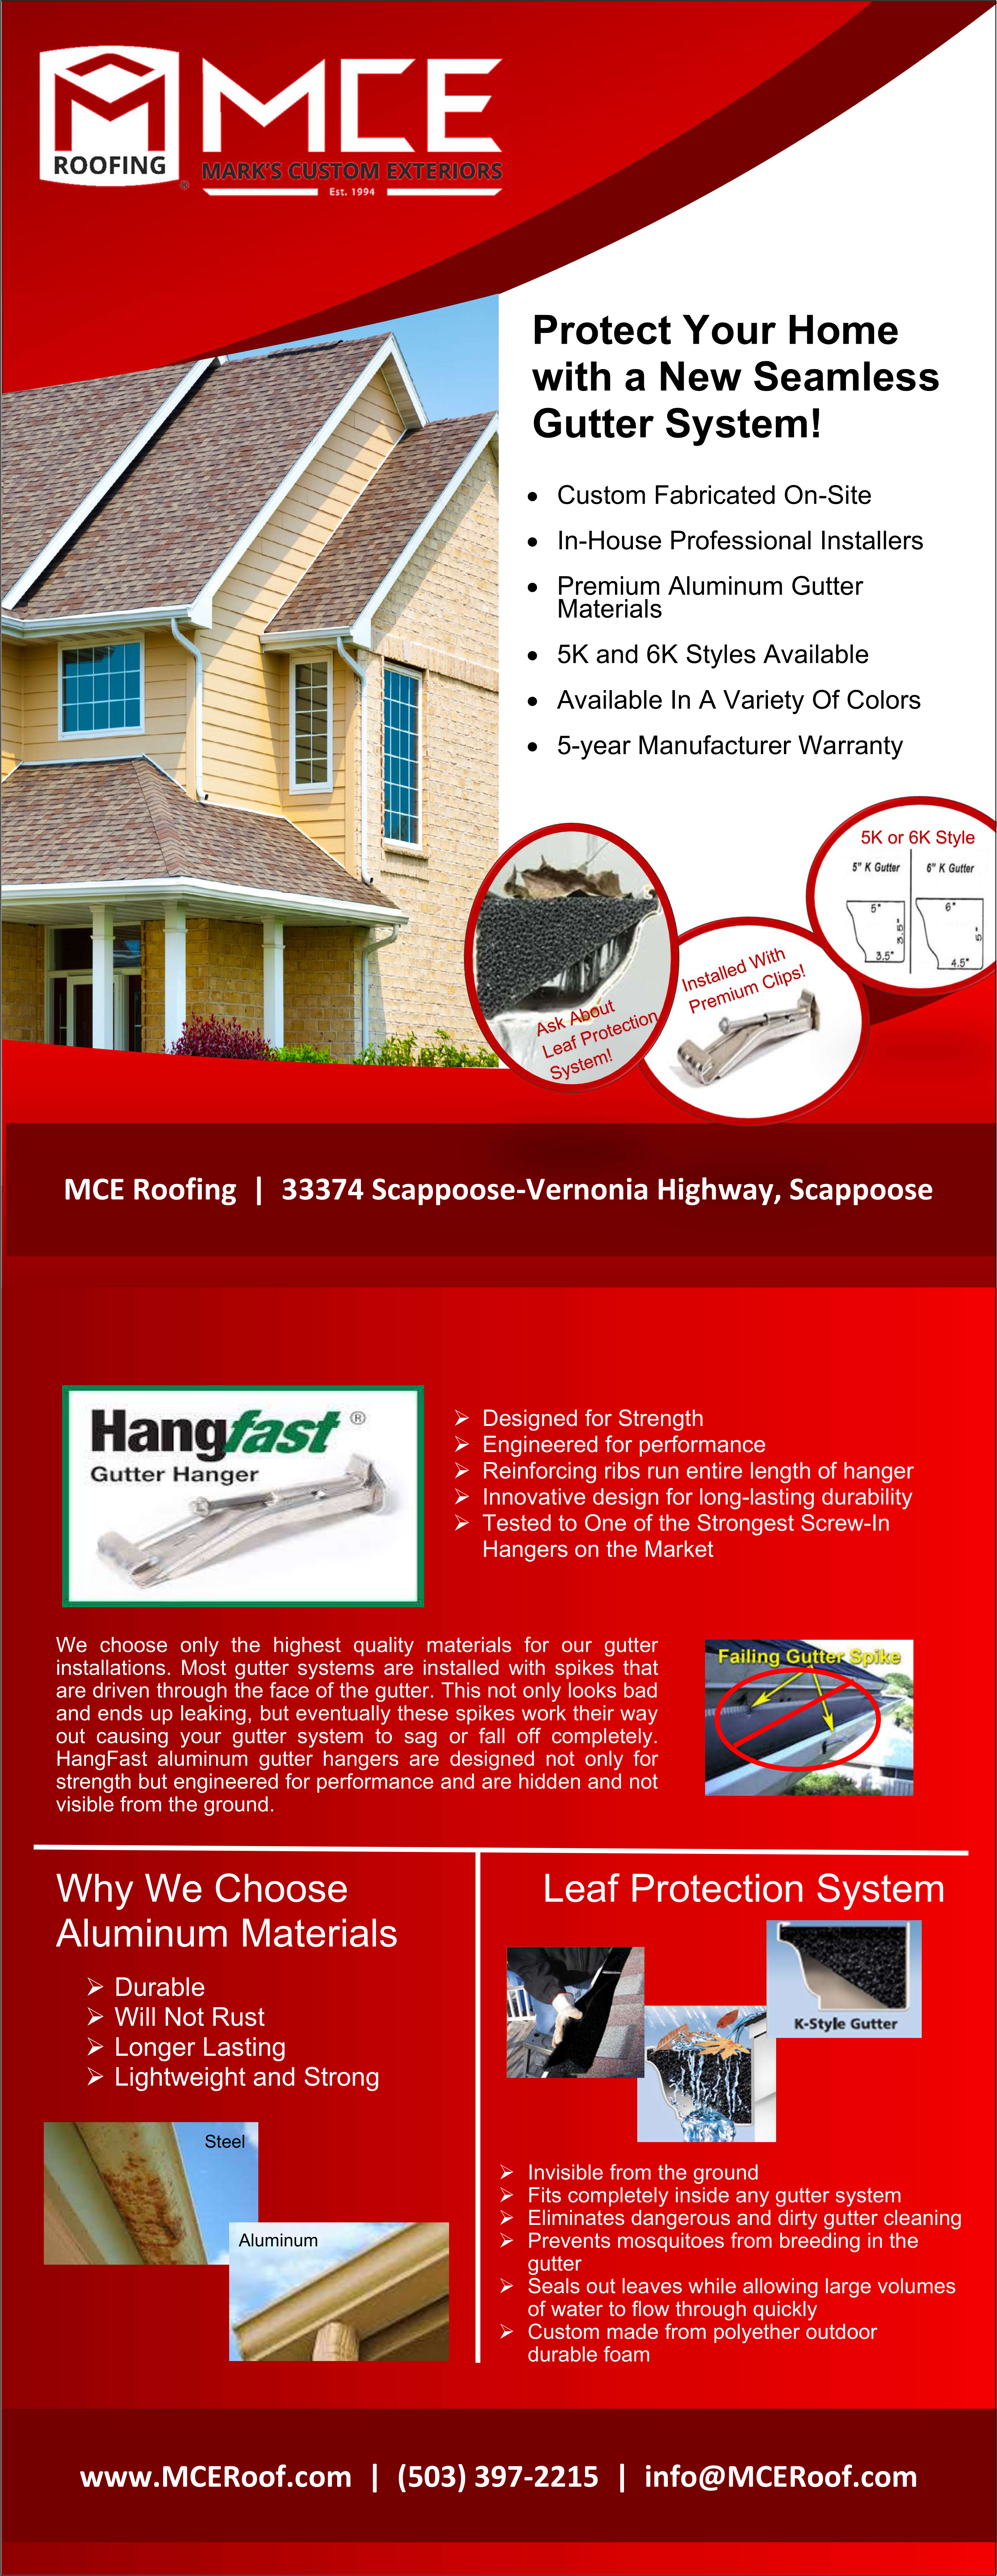 Seamless-gutter-system-by-mce-roofing